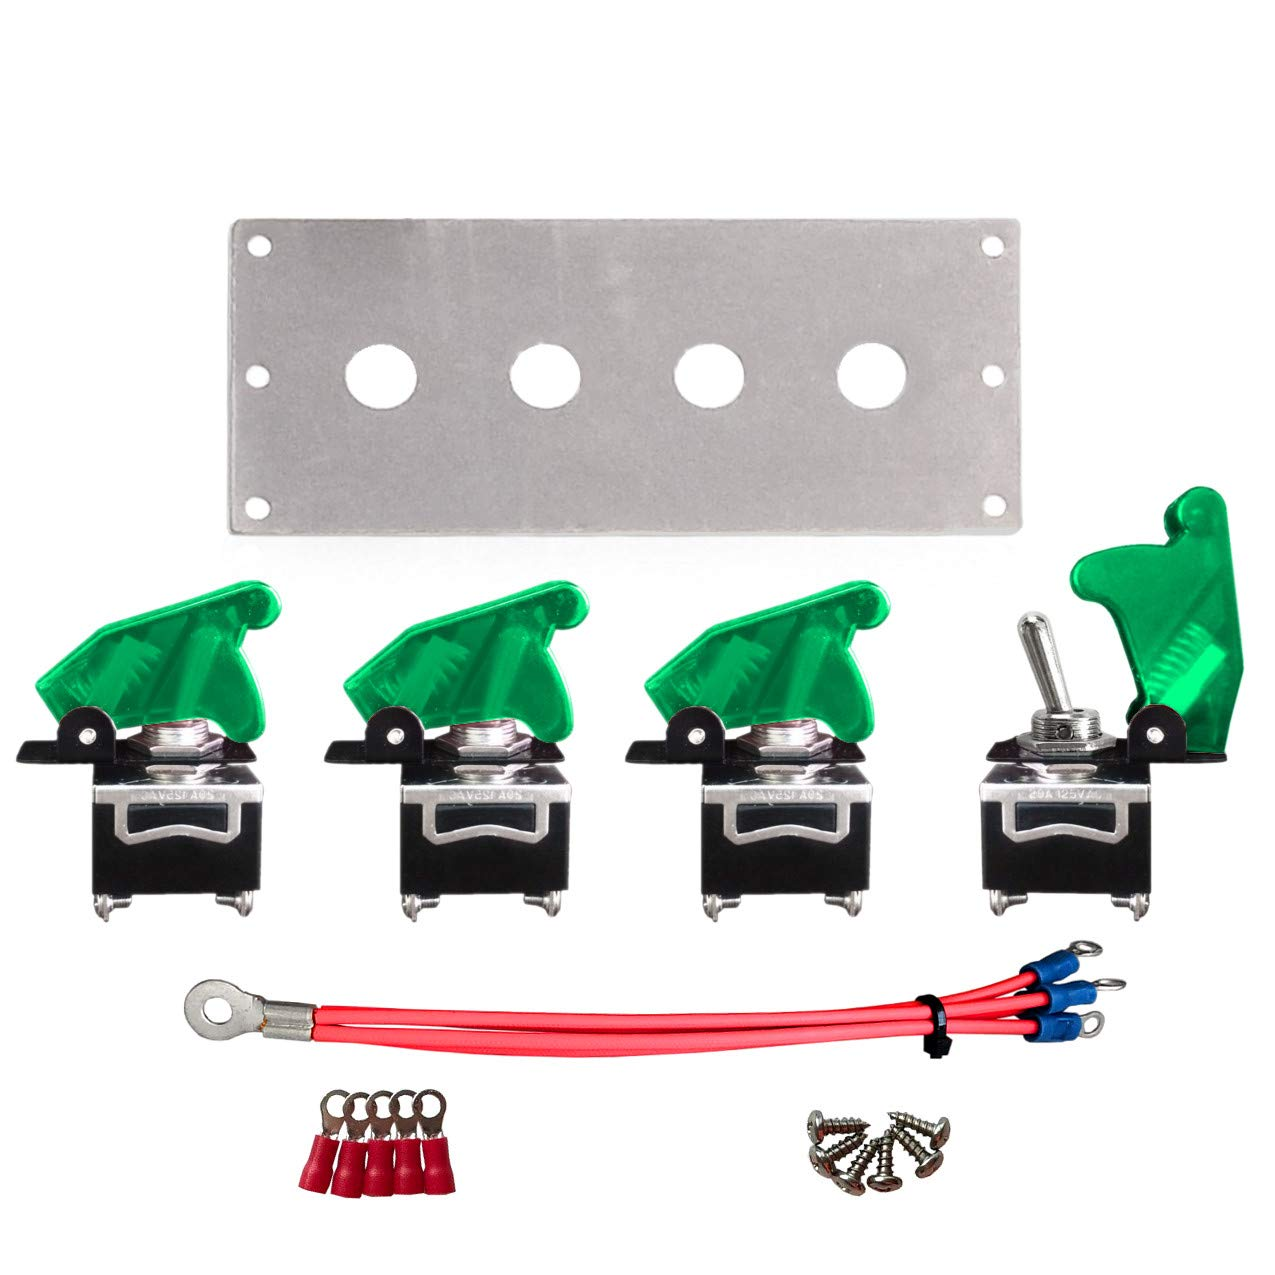 Green MGI SpeedWare 4 Gang Metal Toggle Switch Panel Safety Flip Covers